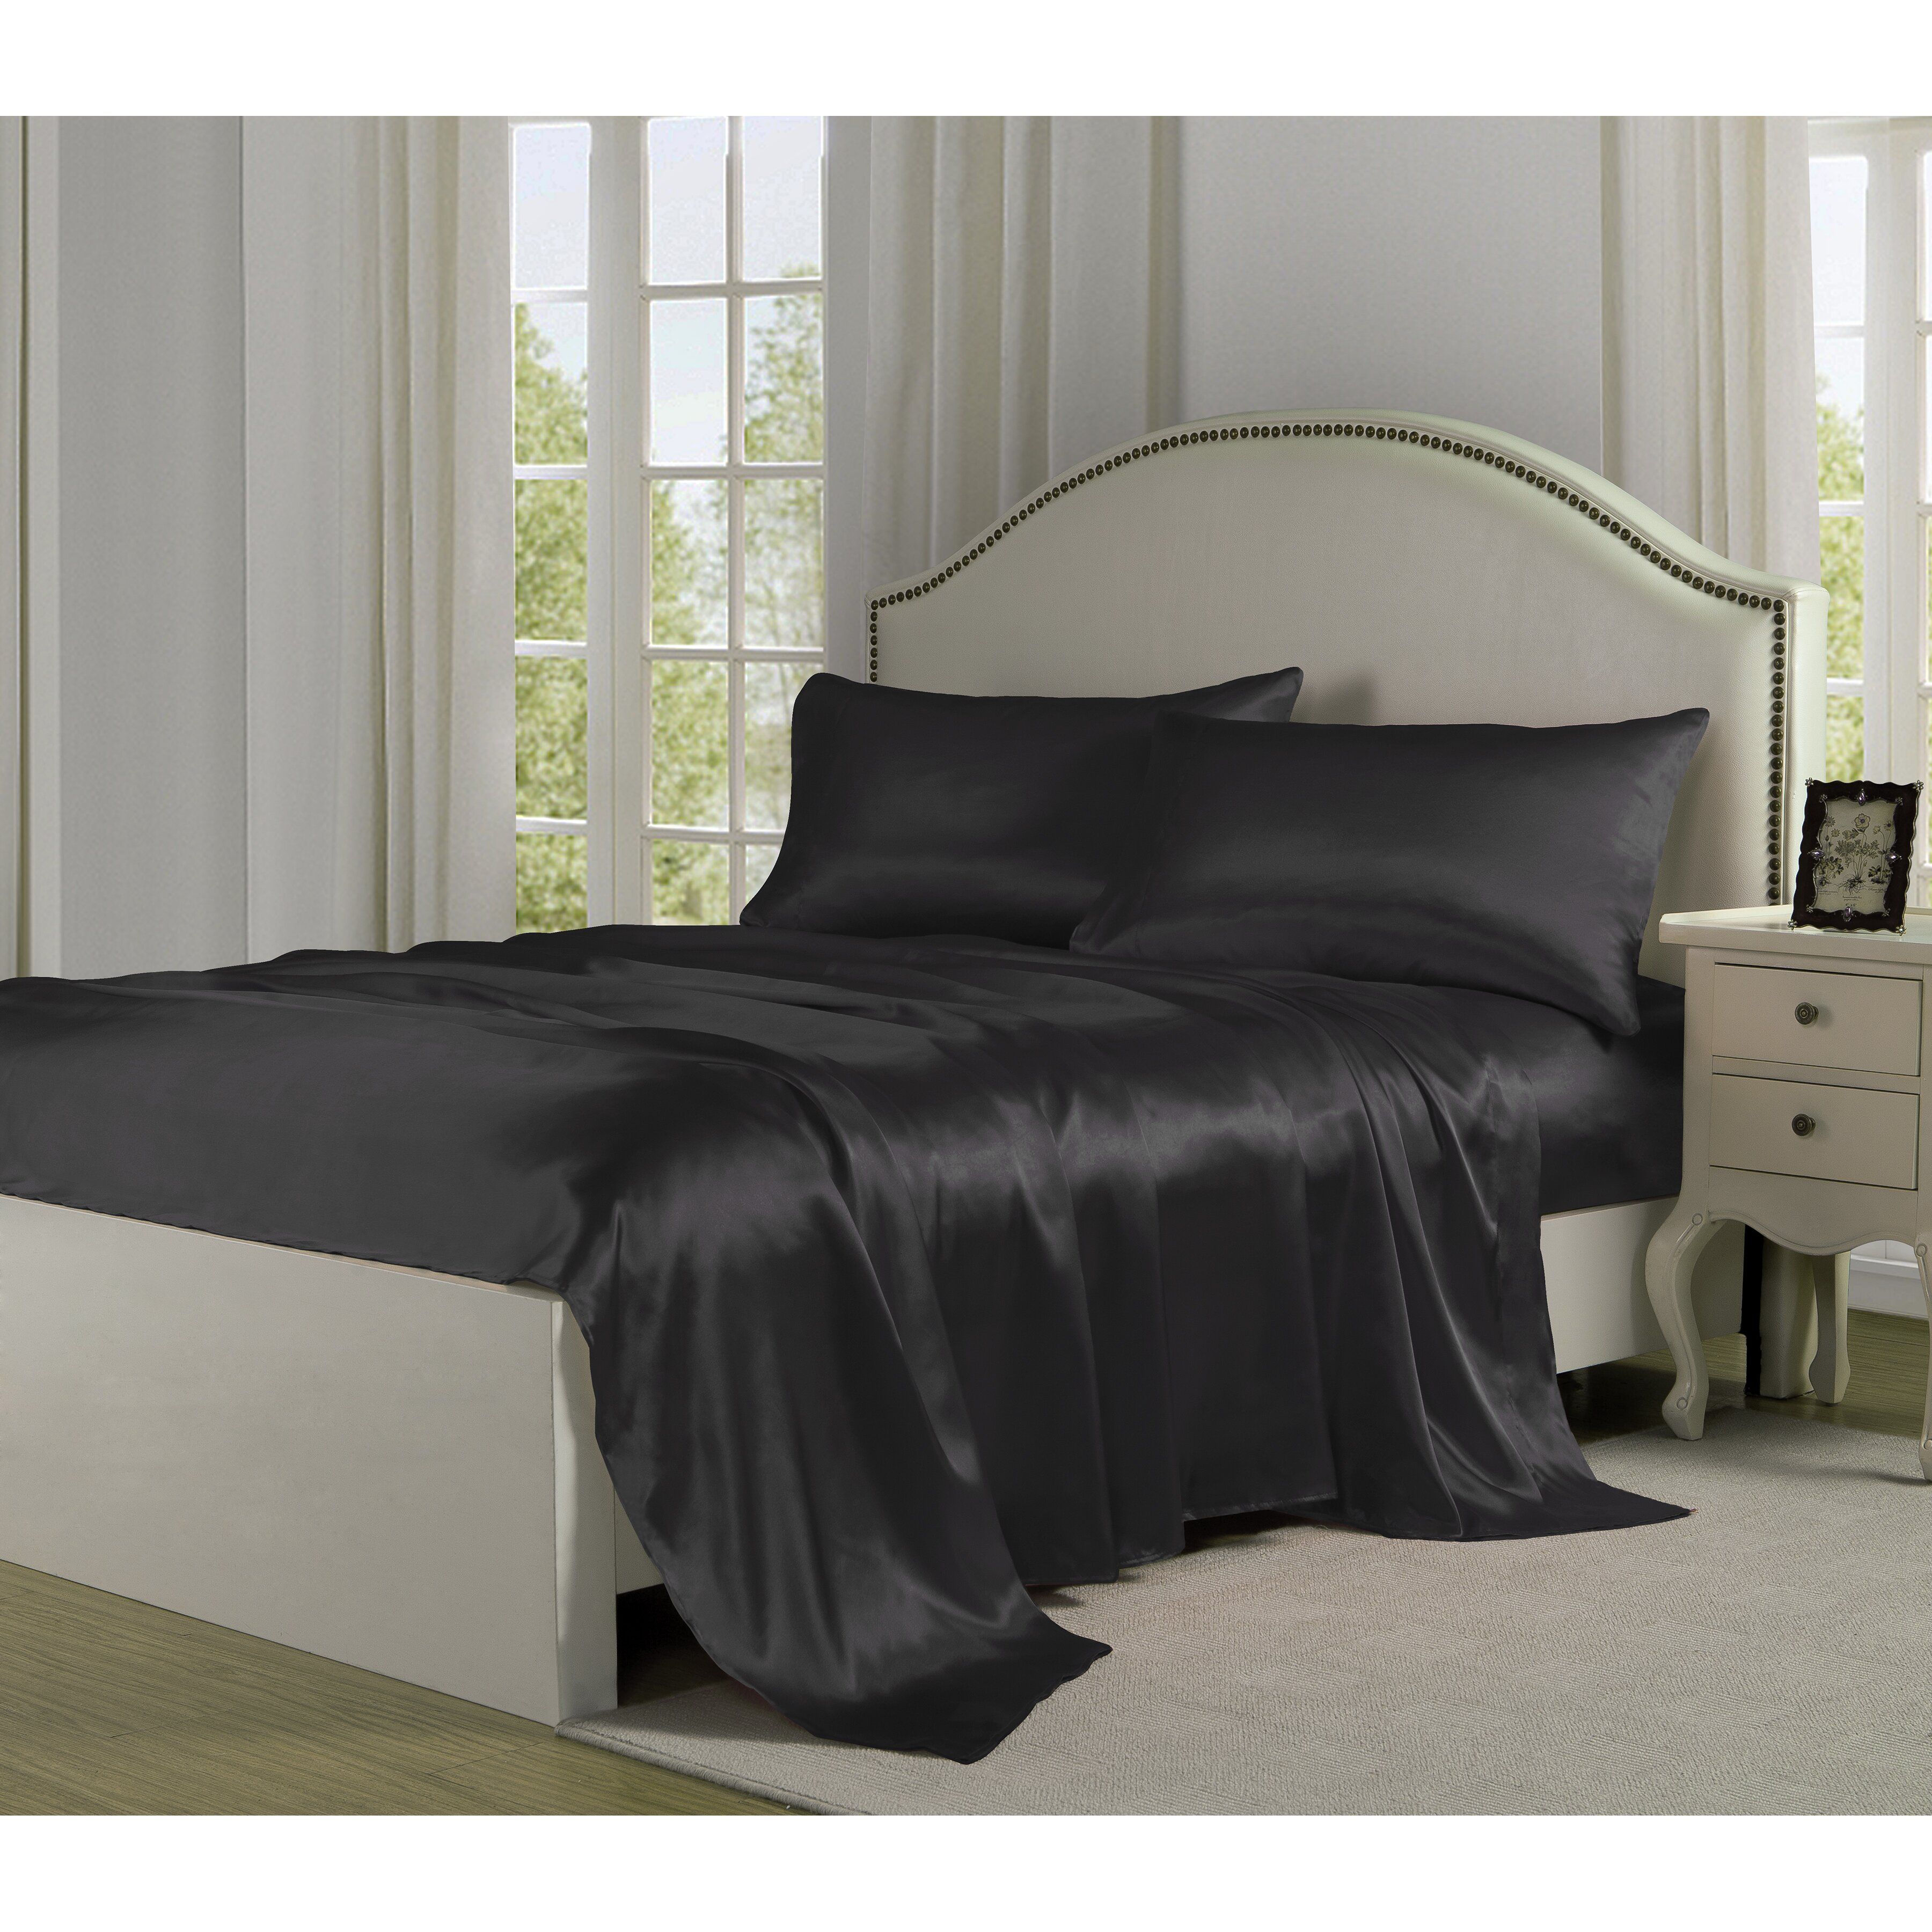 Fresh Ideas 4 Piece 280 Thread Count Satin Sheet Set